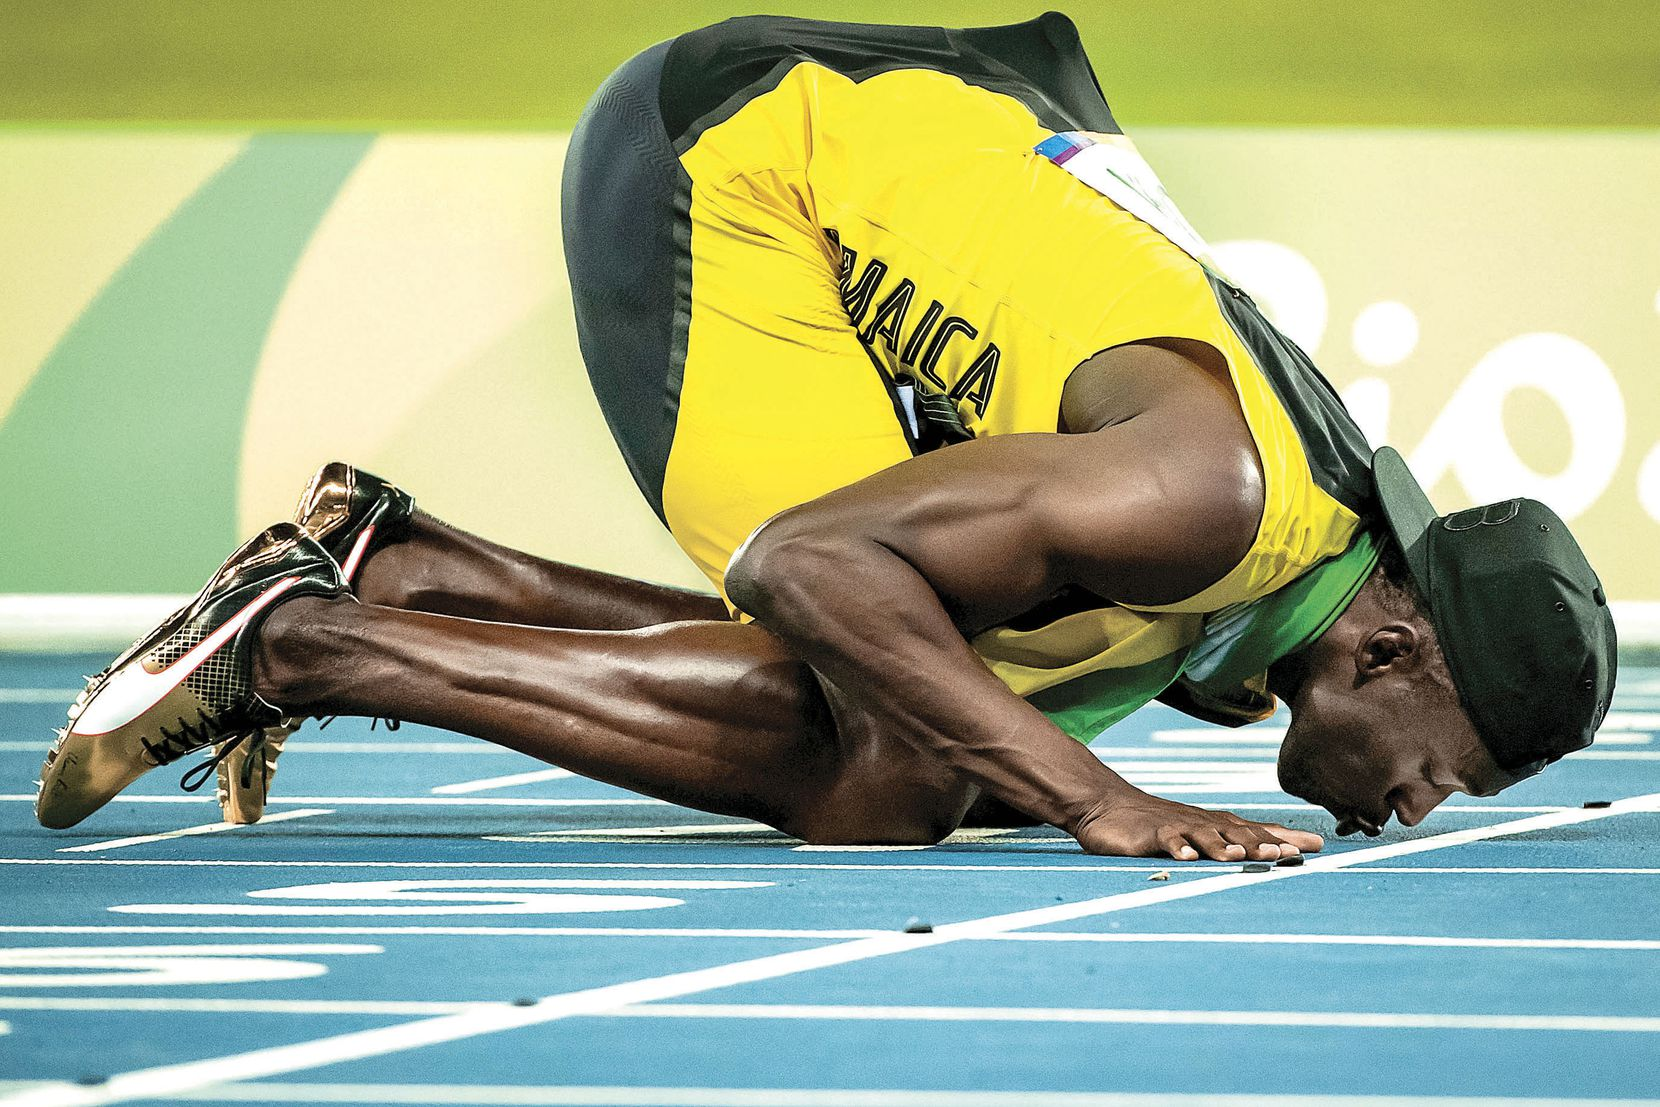 Usain Bolt of Jamaica kissed the track after winning gold in the men's 4x100-meter relay at the 2016 Olympic Games in Rio de Janeiro on Aug. 20. The sprinter said it was his final Olympic race.